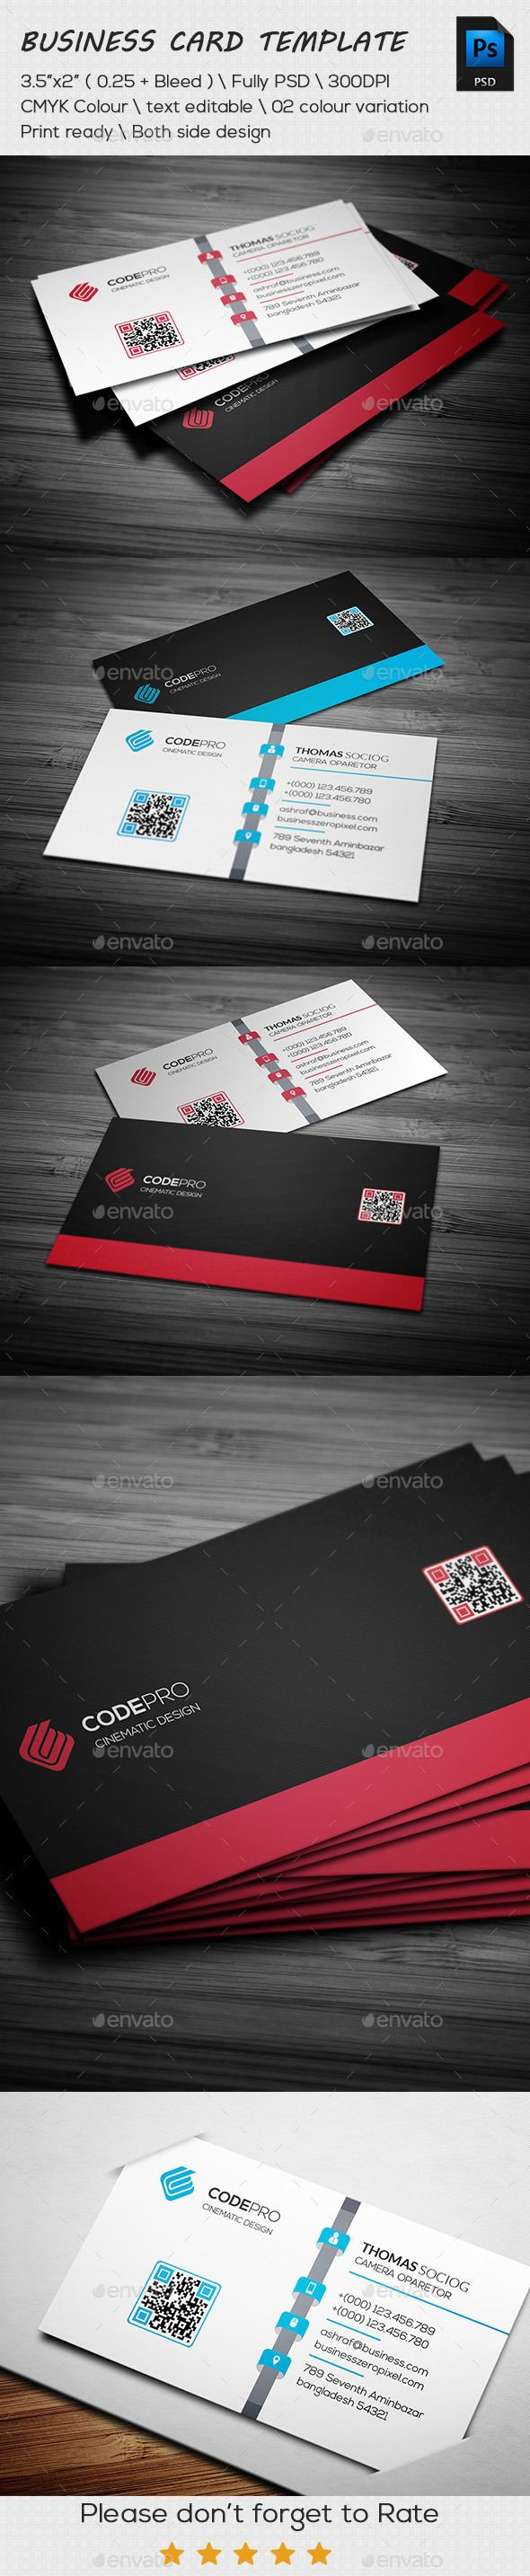 Best 25+ Visiting card templates ideas on Pinterest | Visiting ...